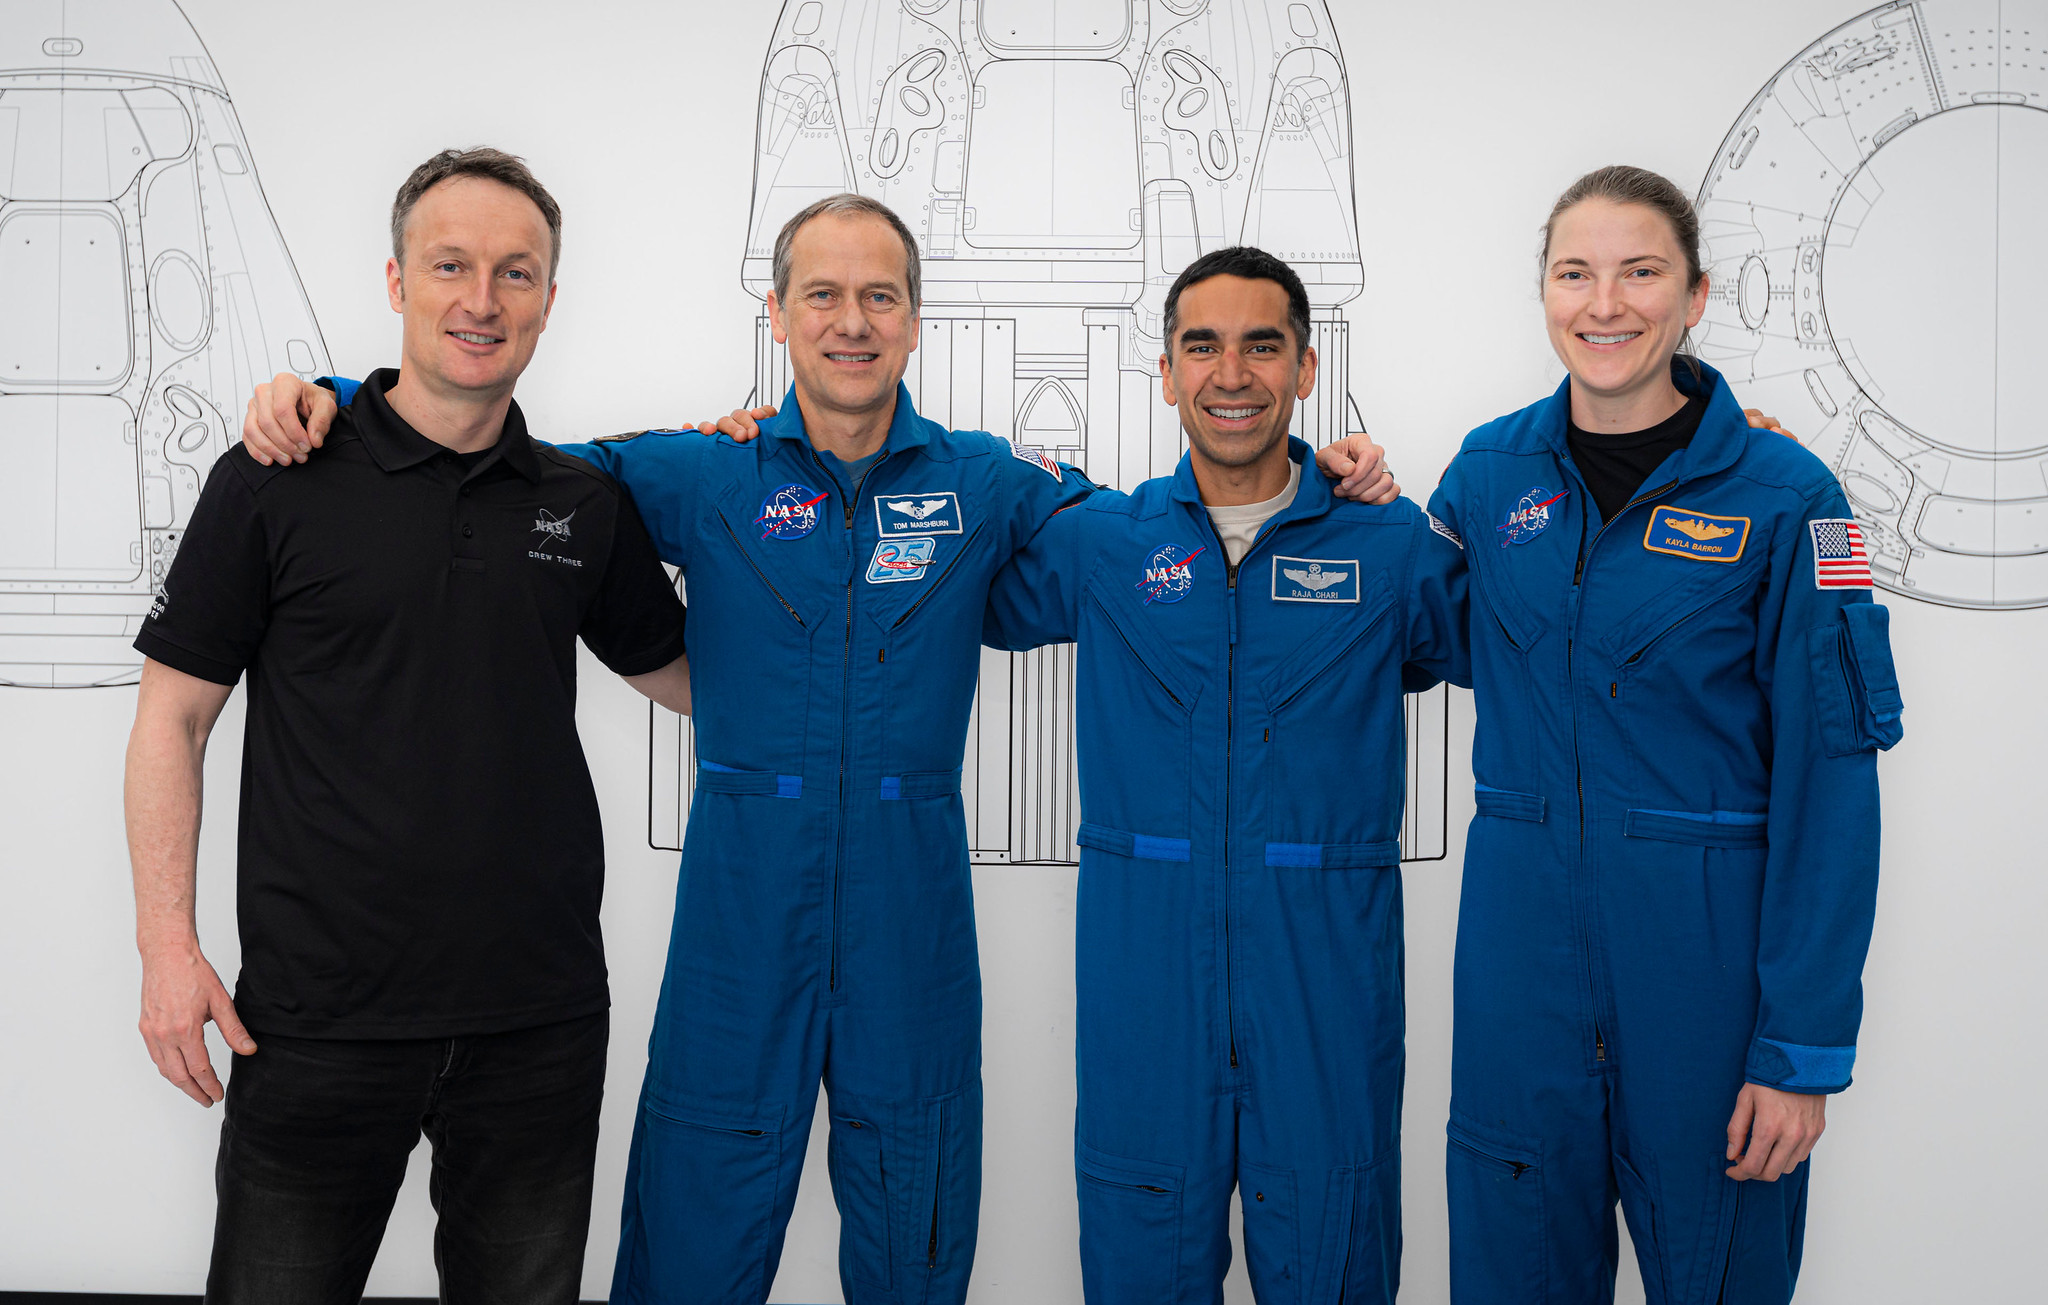 SpaceX Crew-3 astronauts (from left) Matthias Maurer, Thomas Marshburn, Raja Chari and Kayla Barron pose for a portrait during preflight training at SpaceX headquarters in Hawthorne, California.